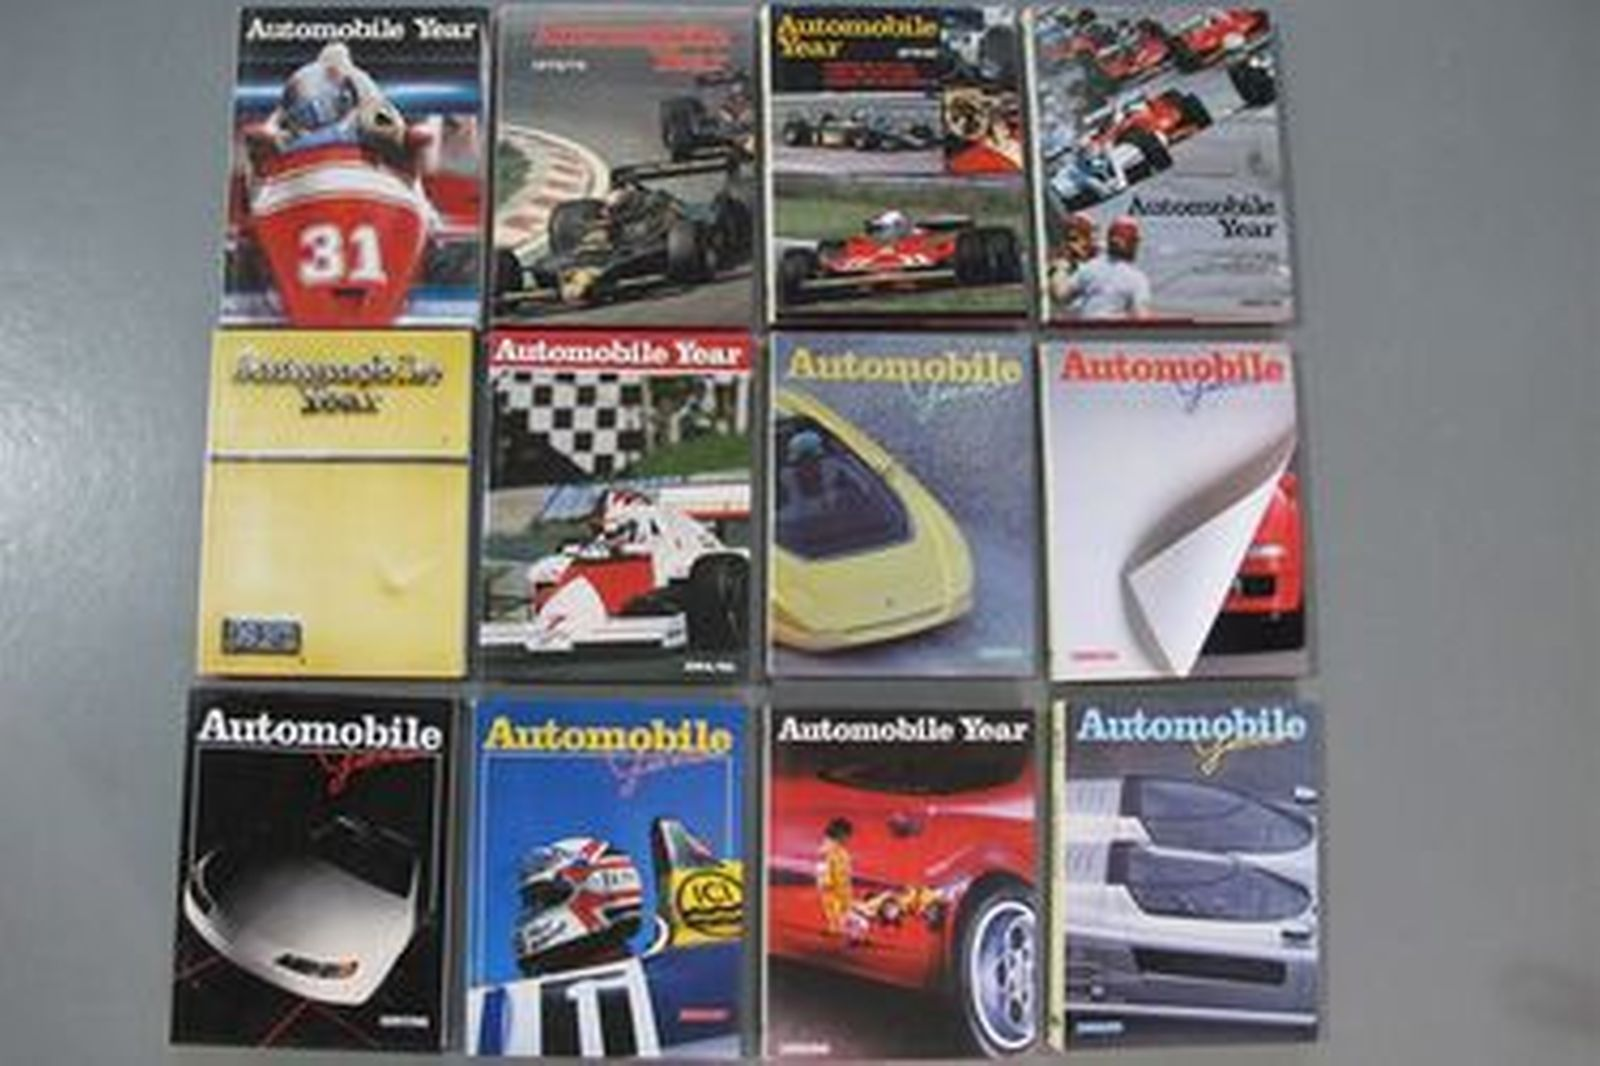 Books - Automobile Year Collection (Volumes 15 - 46)